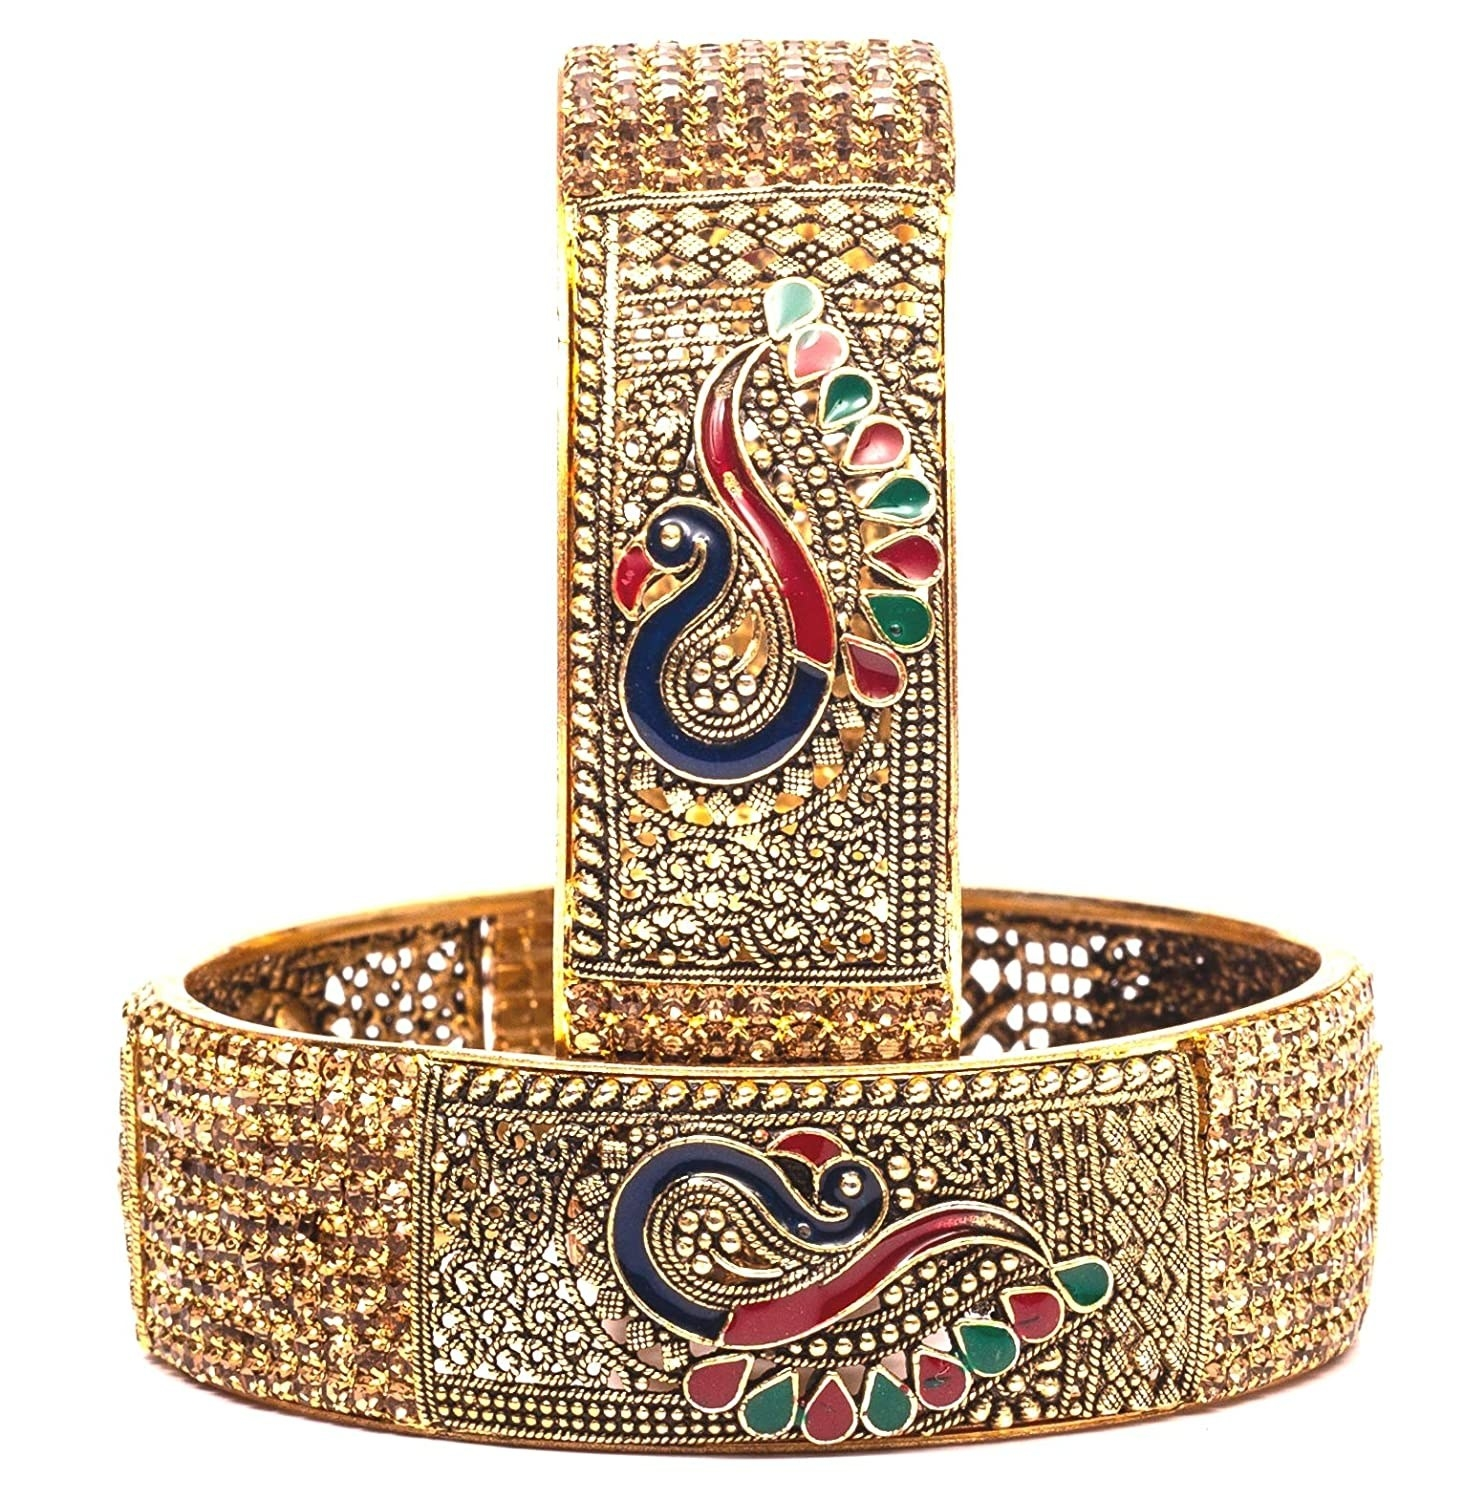 Brass bangles with intricate design and a peacock pattern.